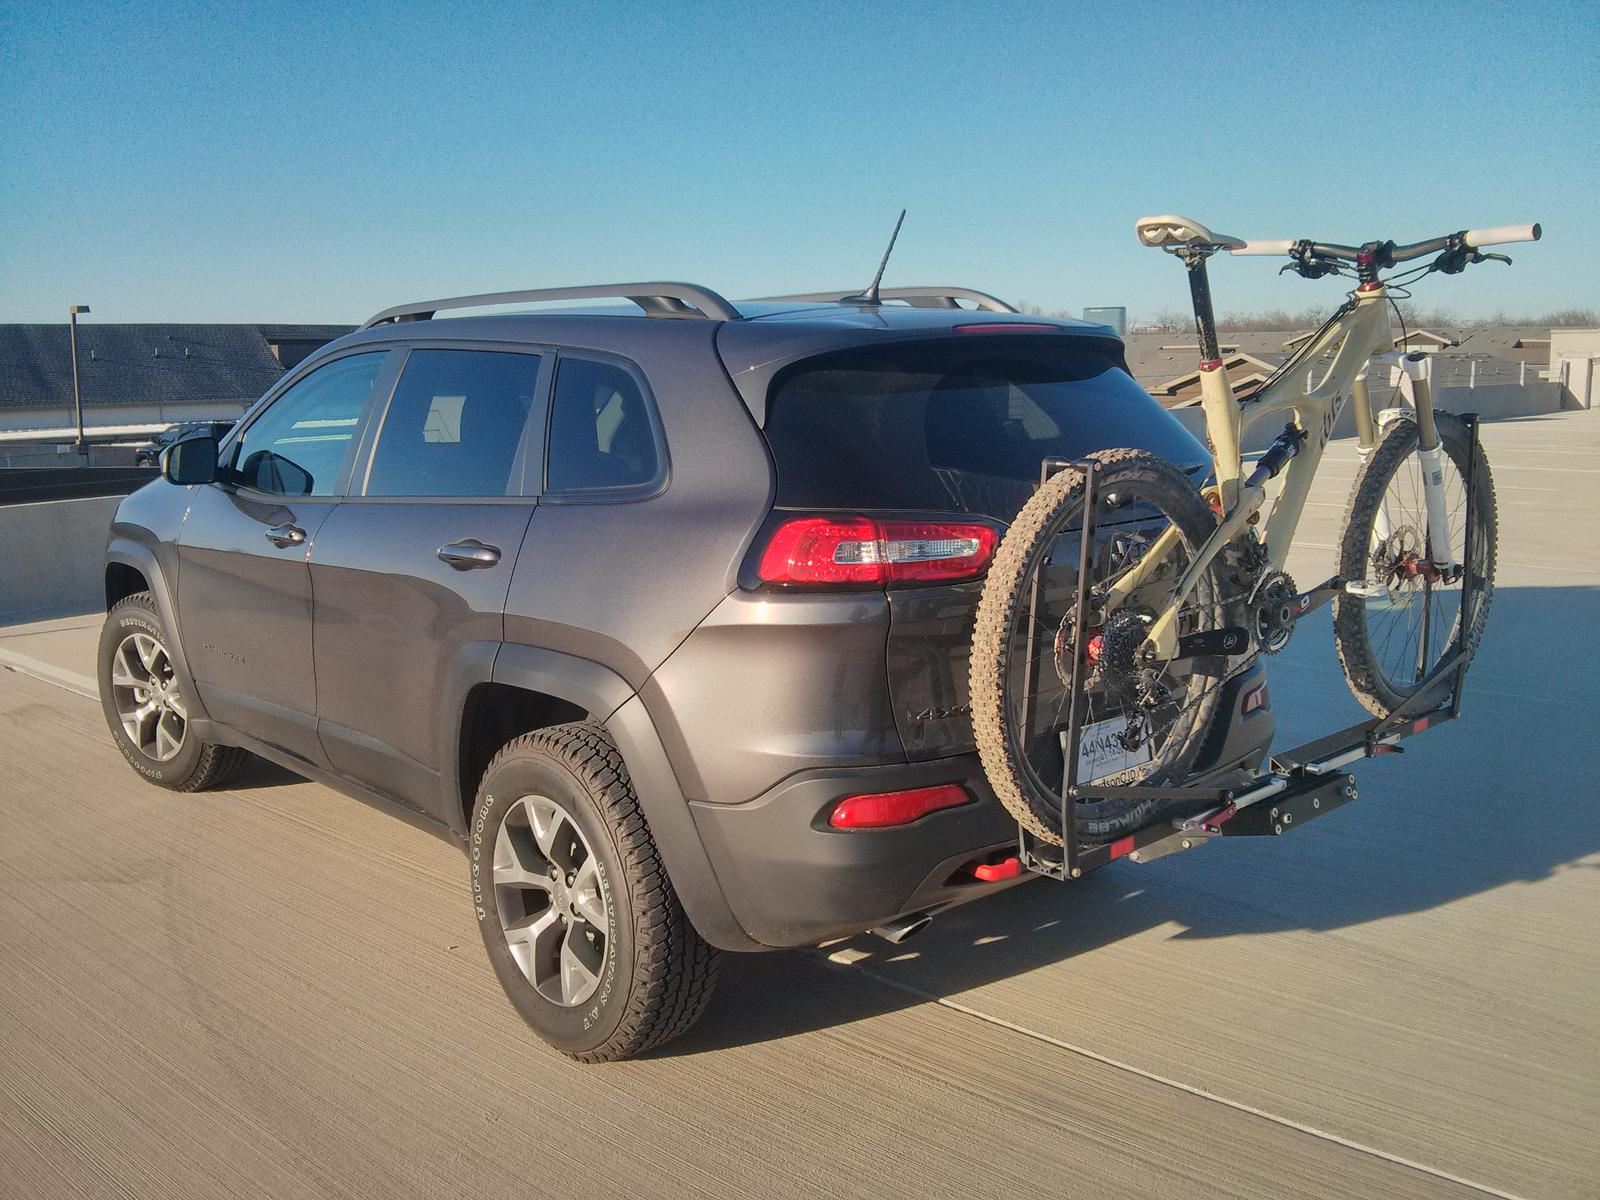 roof rack or hitch for bicycle. - 2014+ jeep cherokee forums